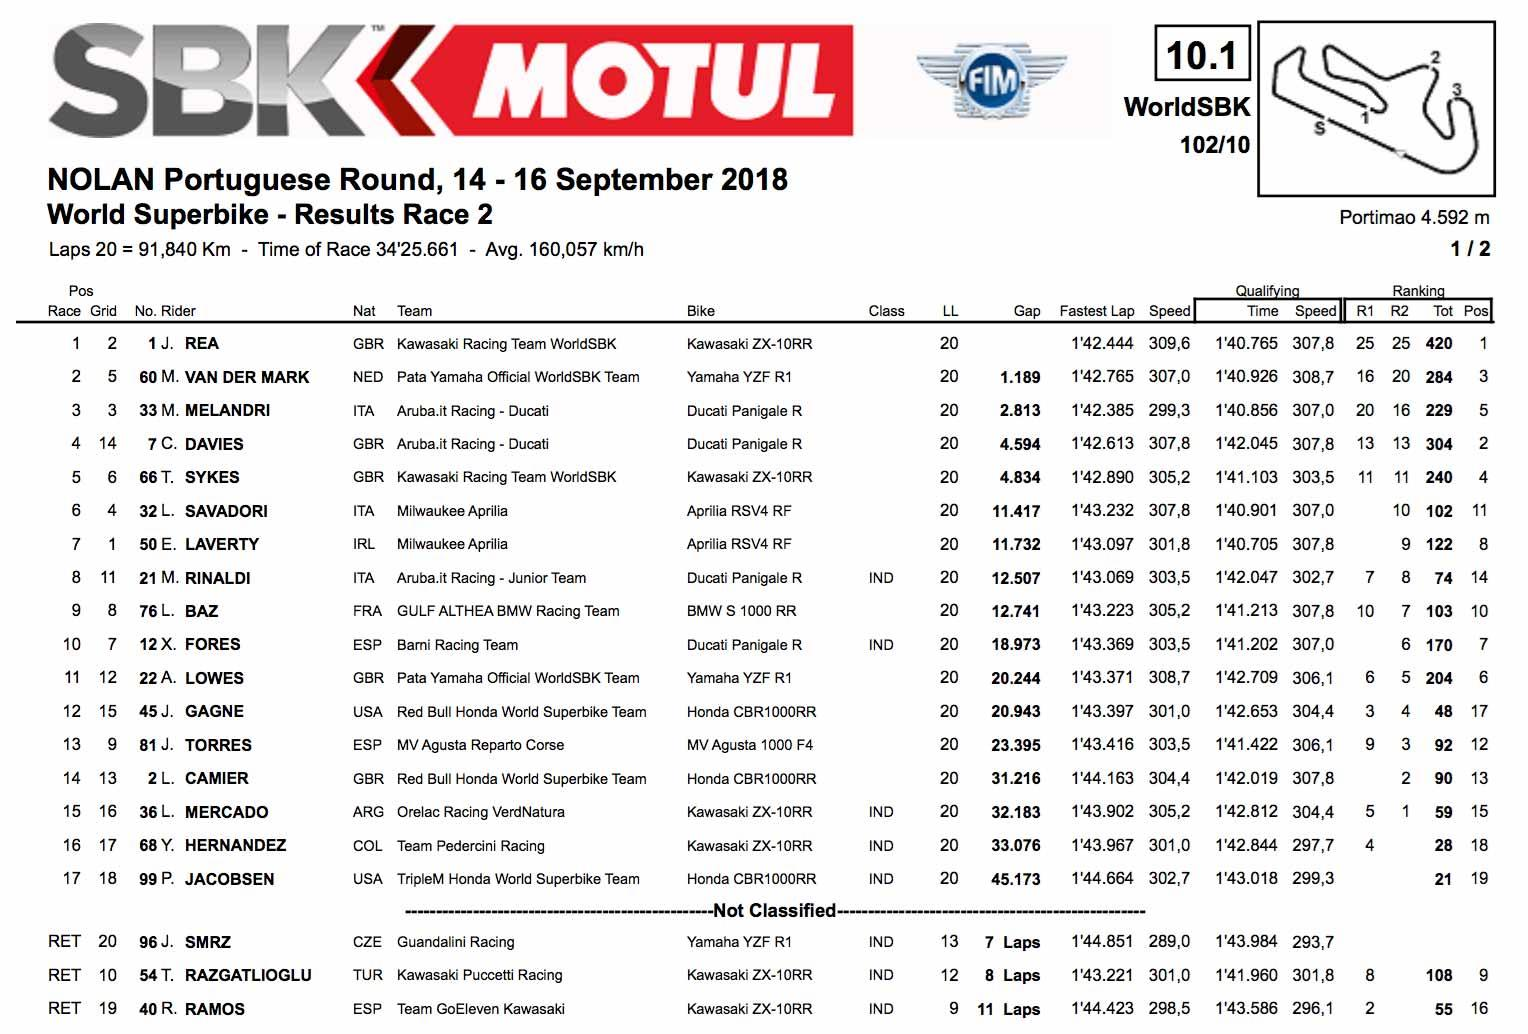 WSBK Portimao race two result